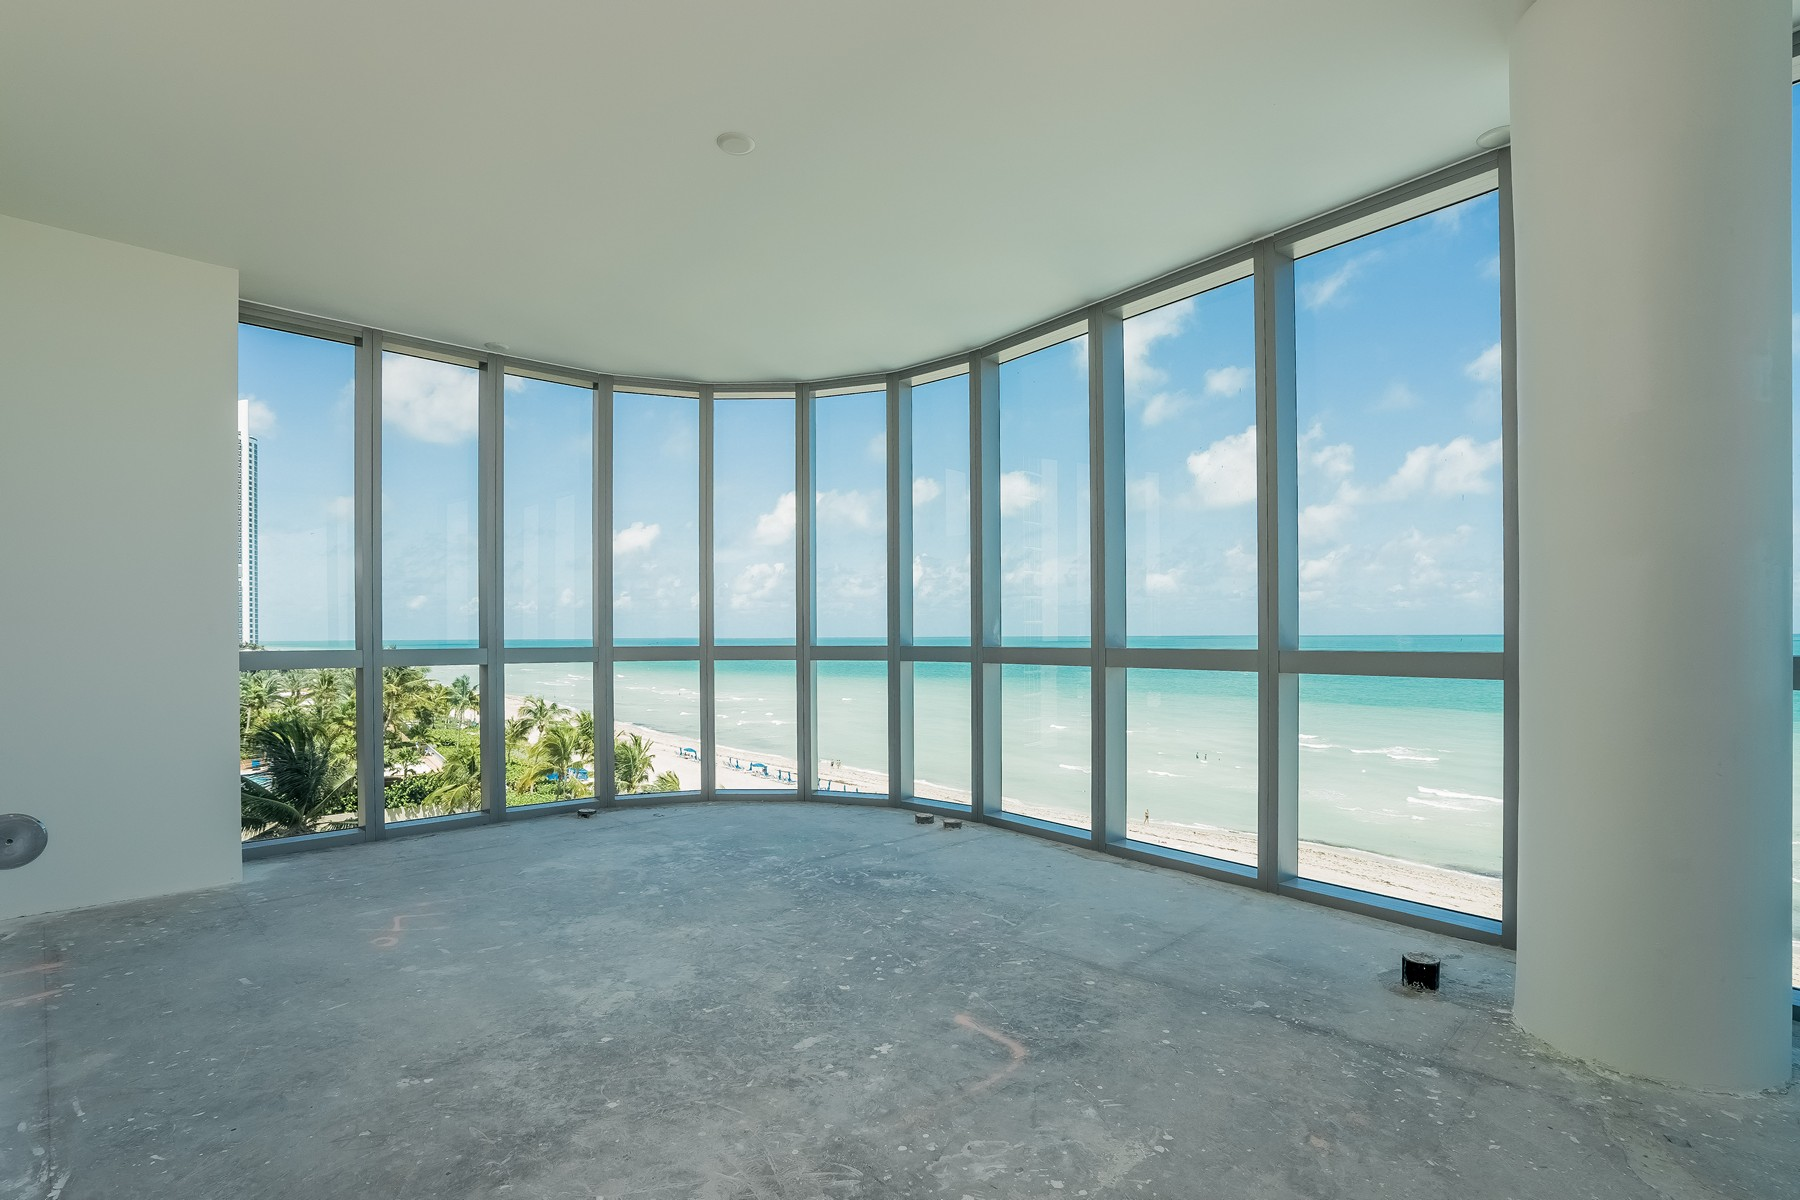 Condominium for Sale at 17475 Collins Ave #301 Sunny Isles Beach, Florida 33160 United States